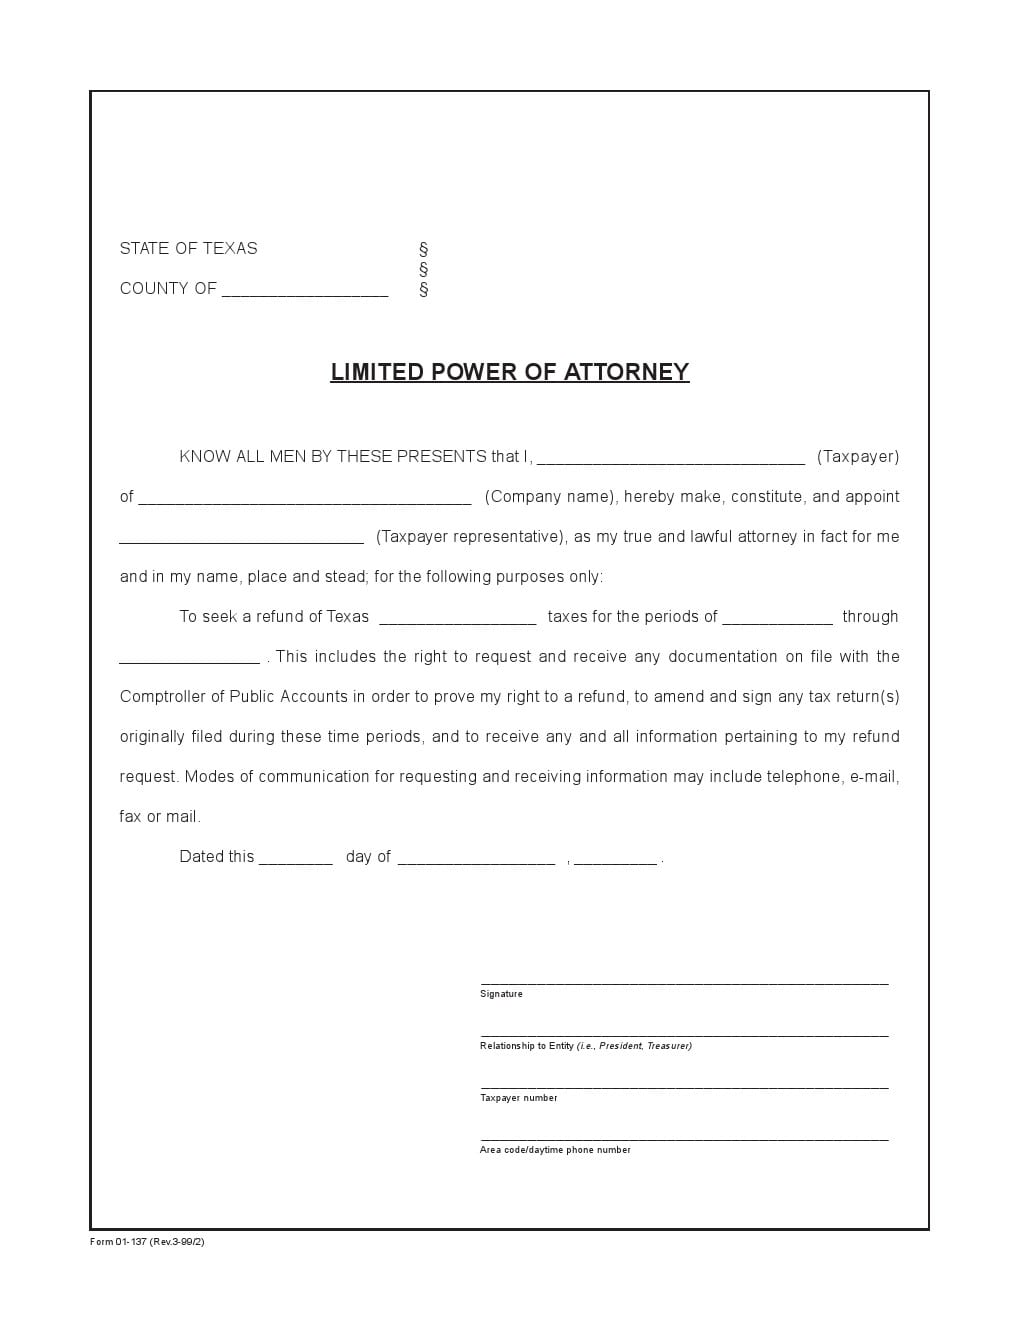 Texas Limited Power of Attorney Form